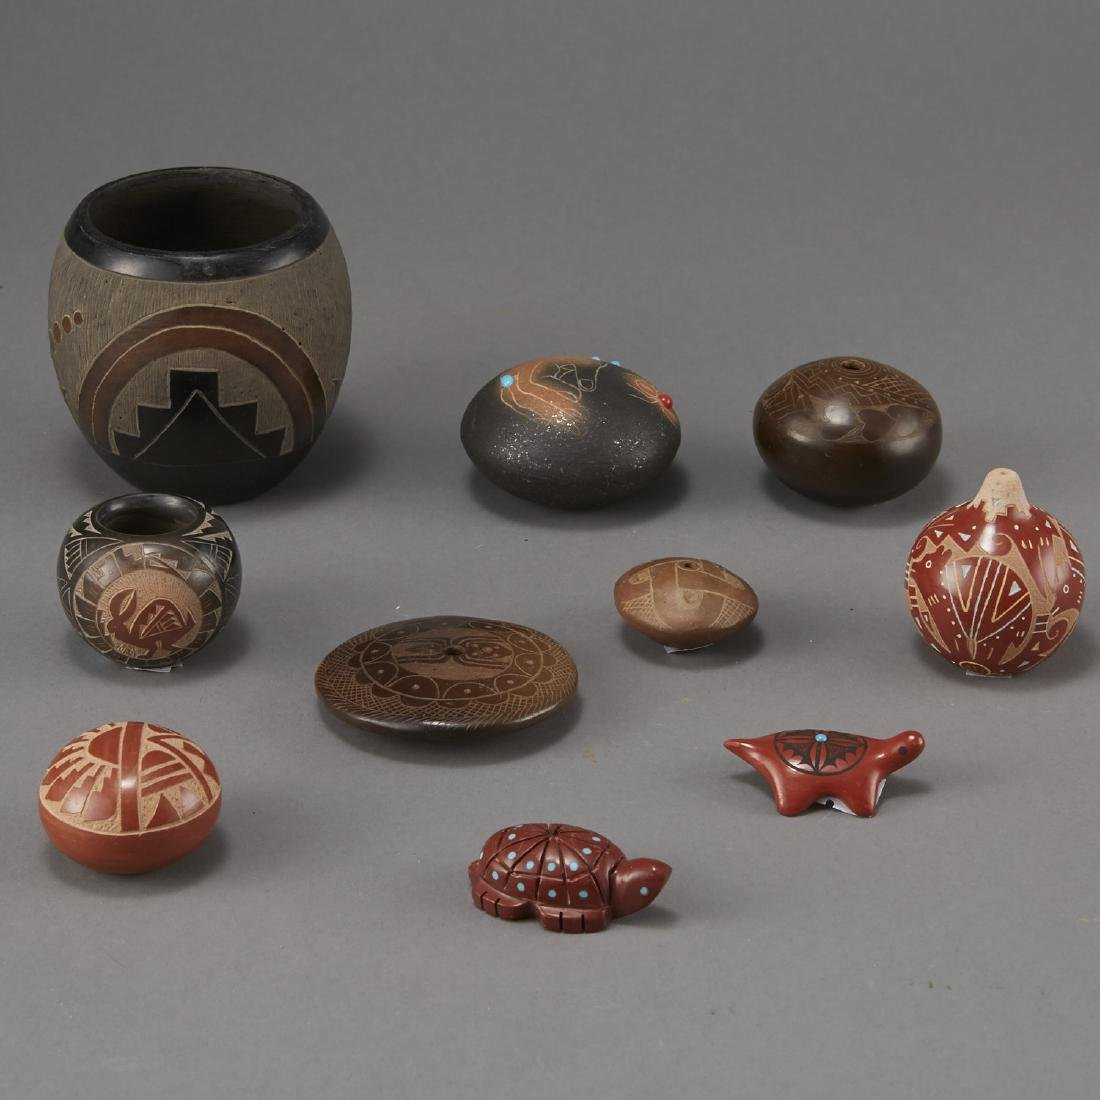 Group of 10 Small Pueblo Pottery Pieces - 4